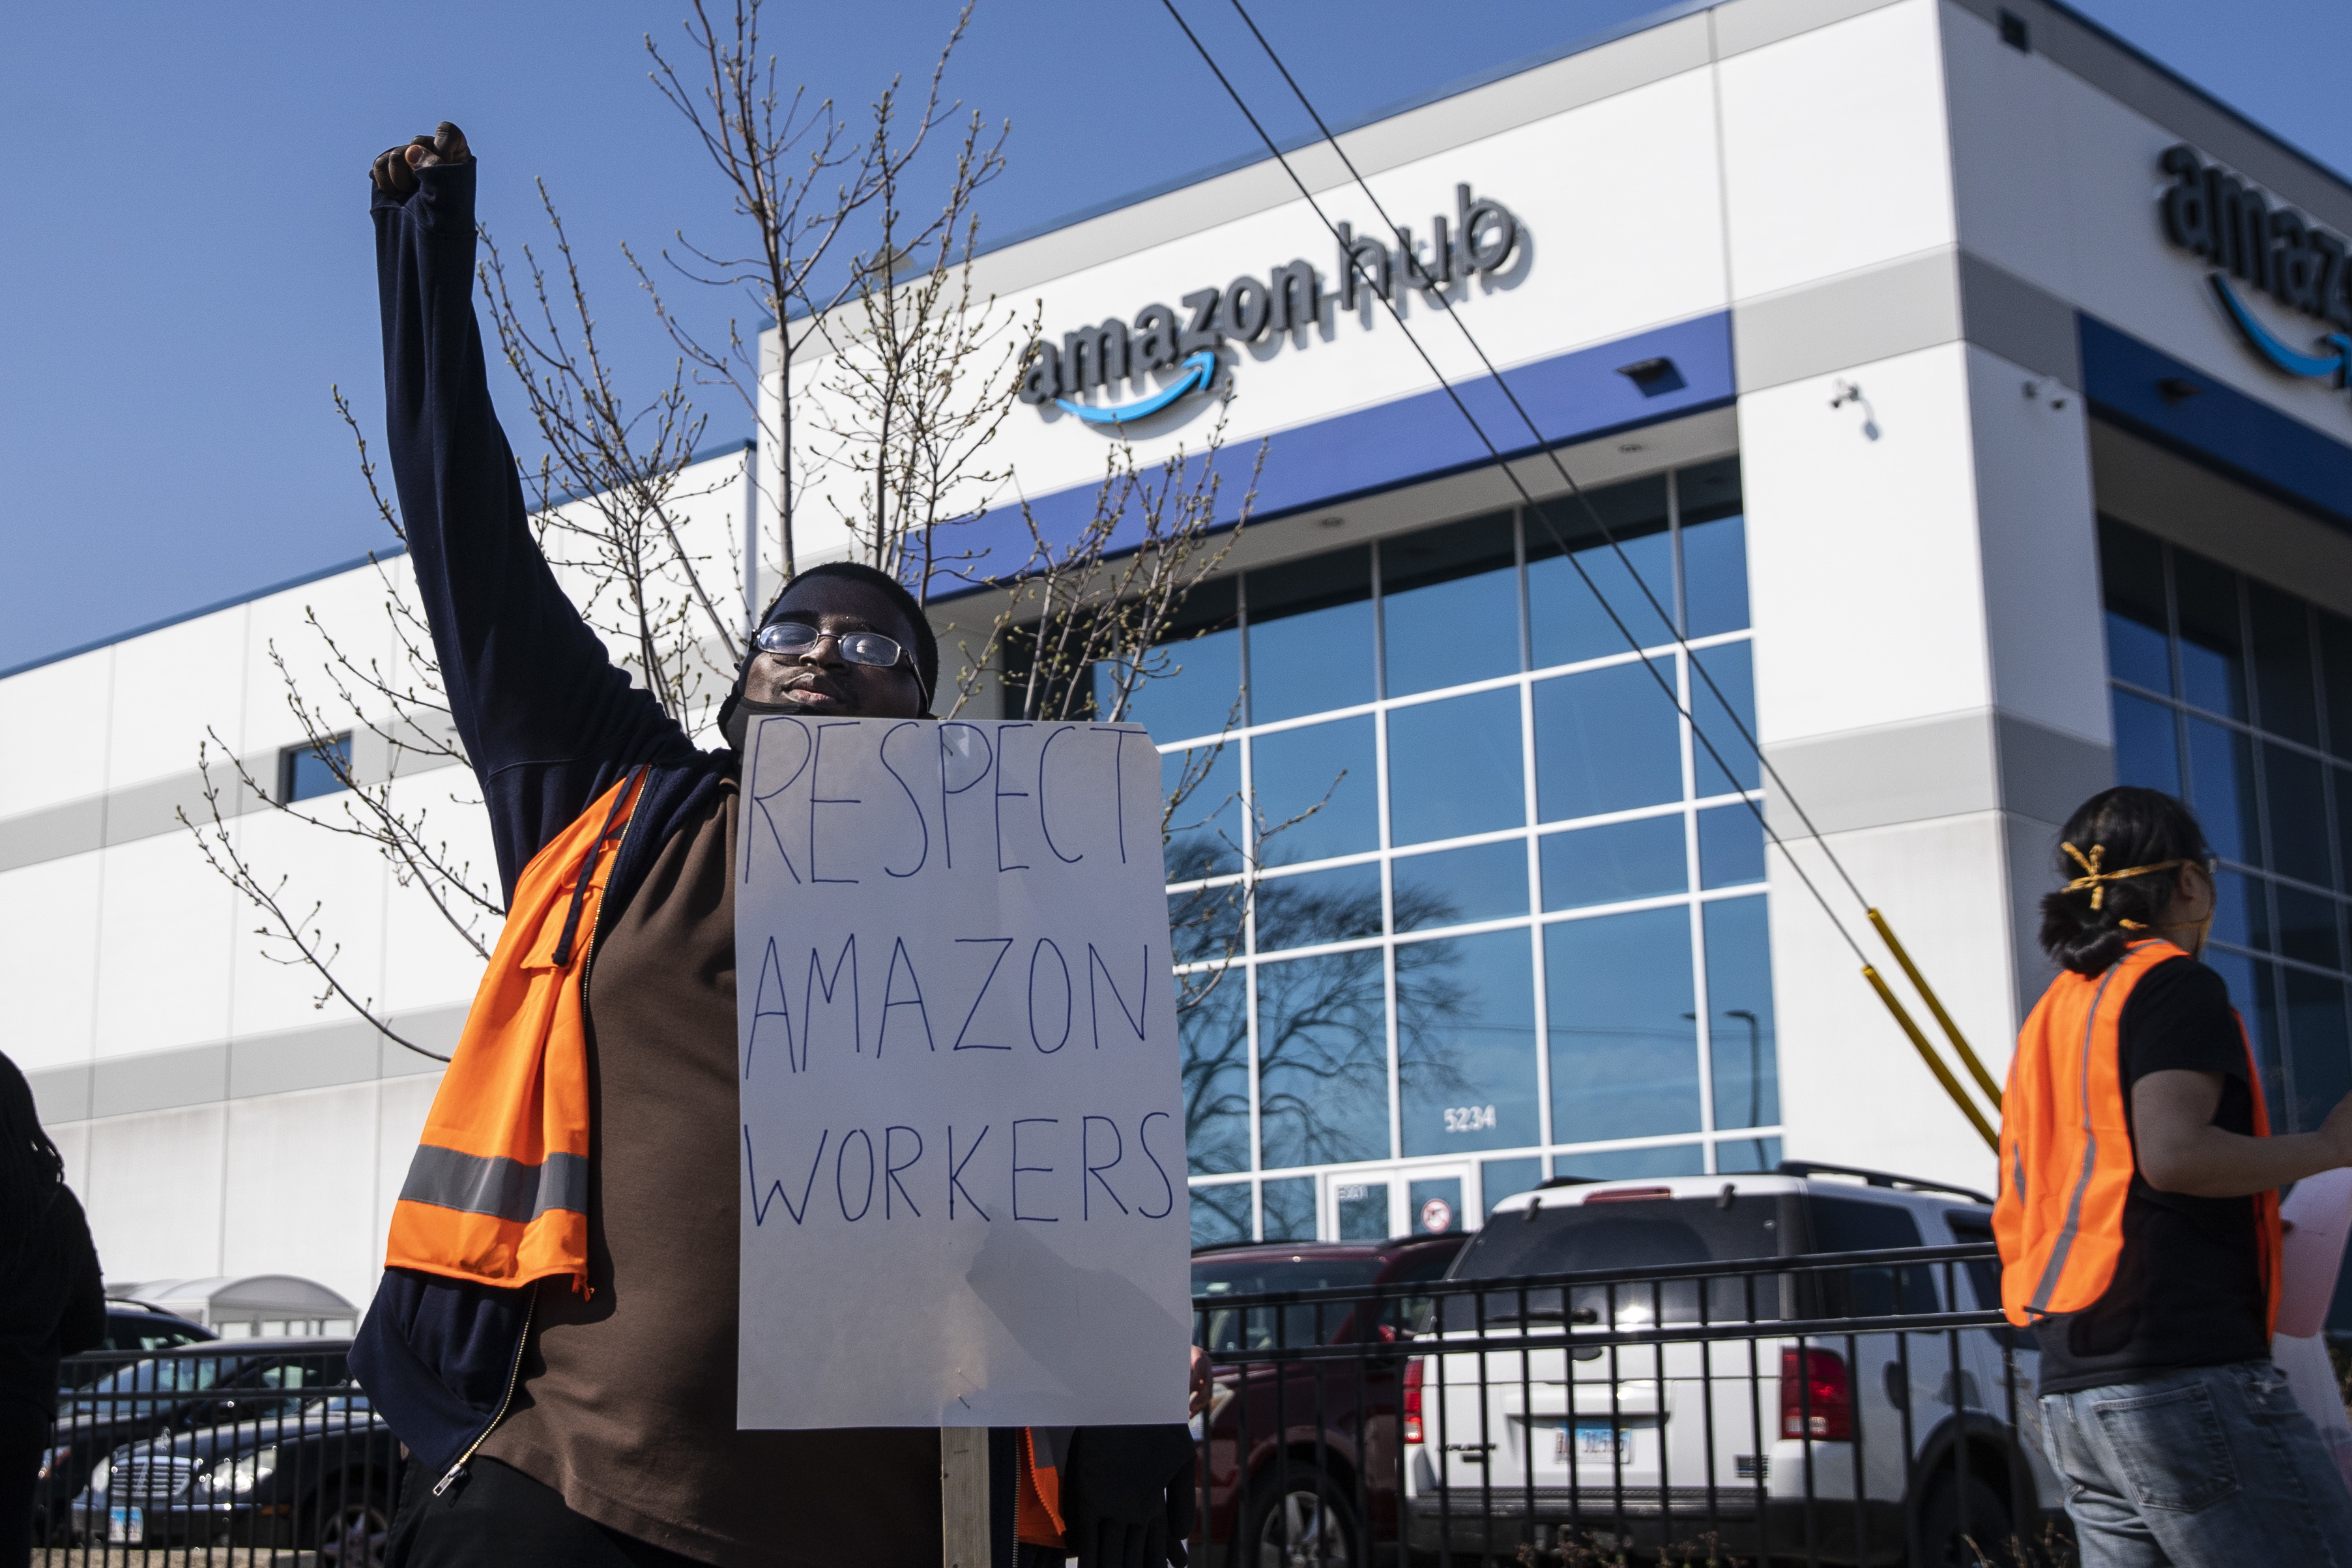 Rakyle Johnson, a sorter, joins about a dozen fellow Amazon workers in a walkout and protest on Wednesday, April 7, 2021 to demand better working conditions at the online retailer's Gage Park facility, 3507 W. 51st St.